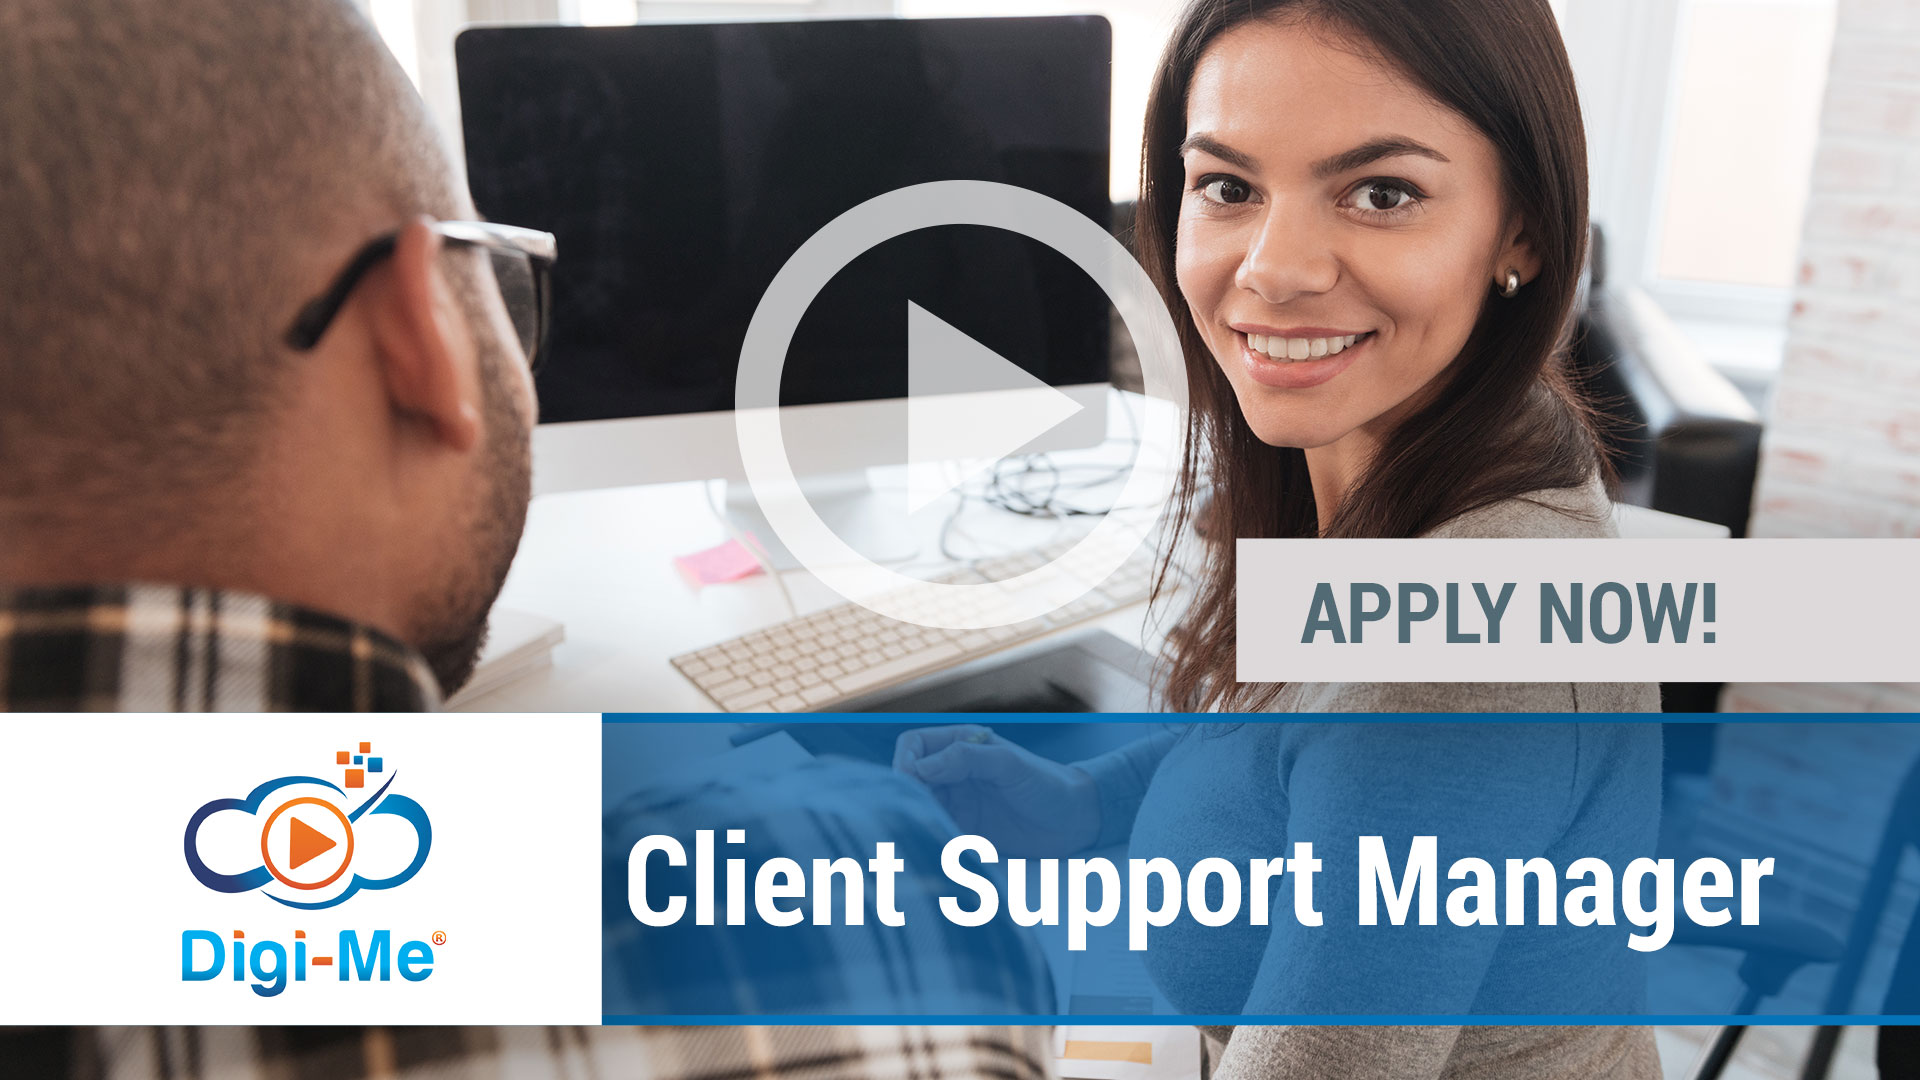 Watch our careers video for available job opening Client Support Manager in Naperville, IL, USA